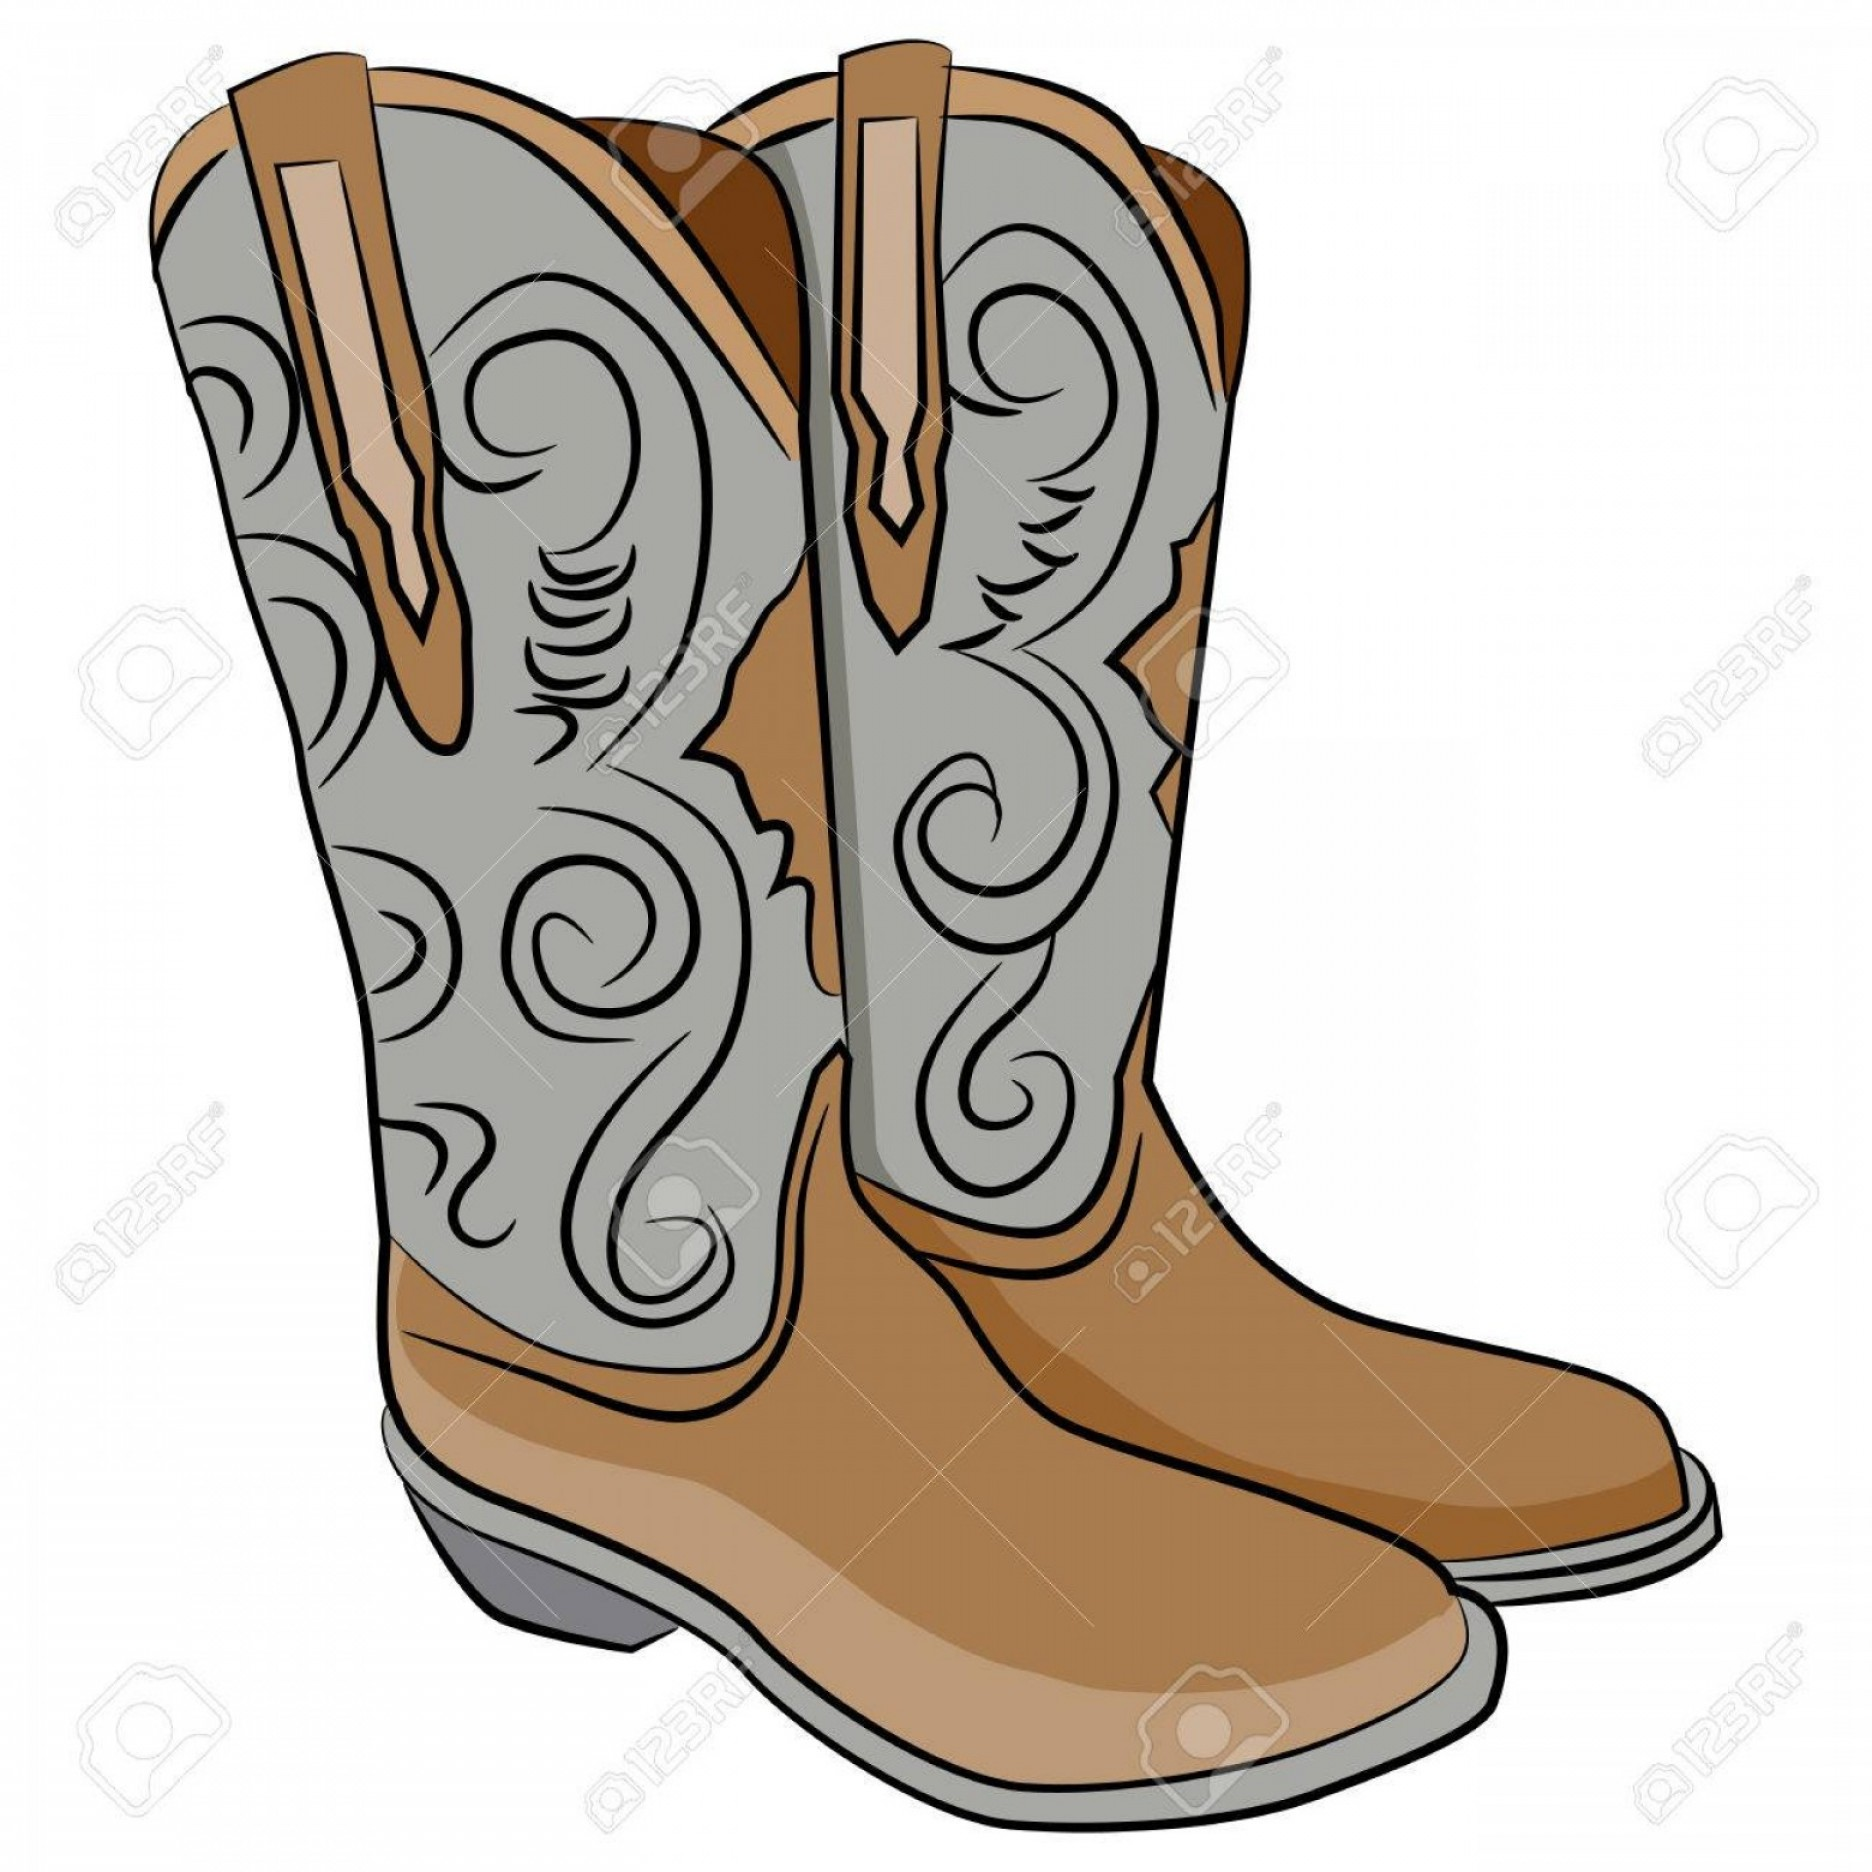 Two Cowgirl Boots Vector: Photostock Vector An Image Of A Pair Of Cowboy Boots